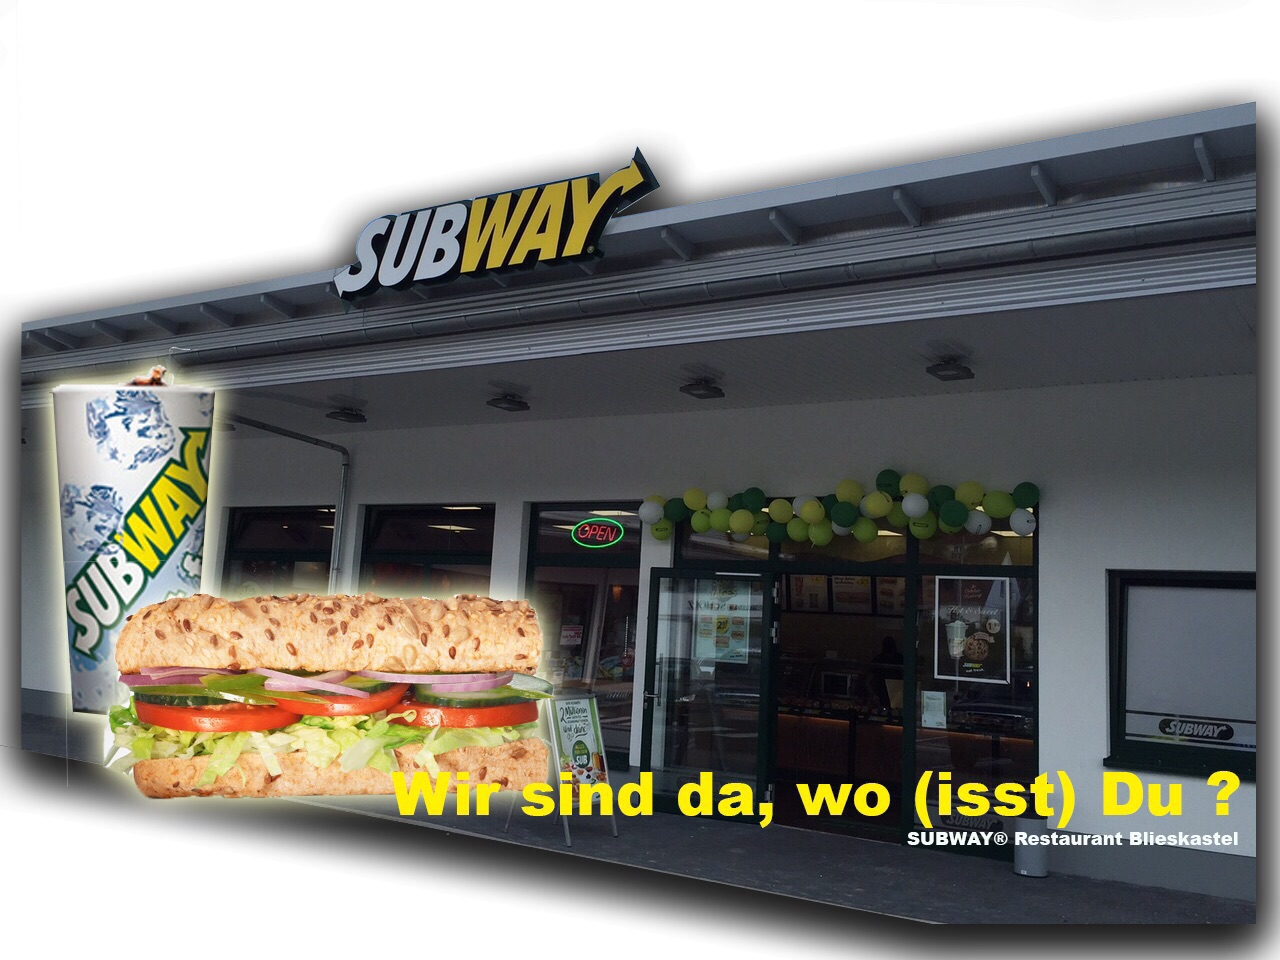 Subway Blieskastel